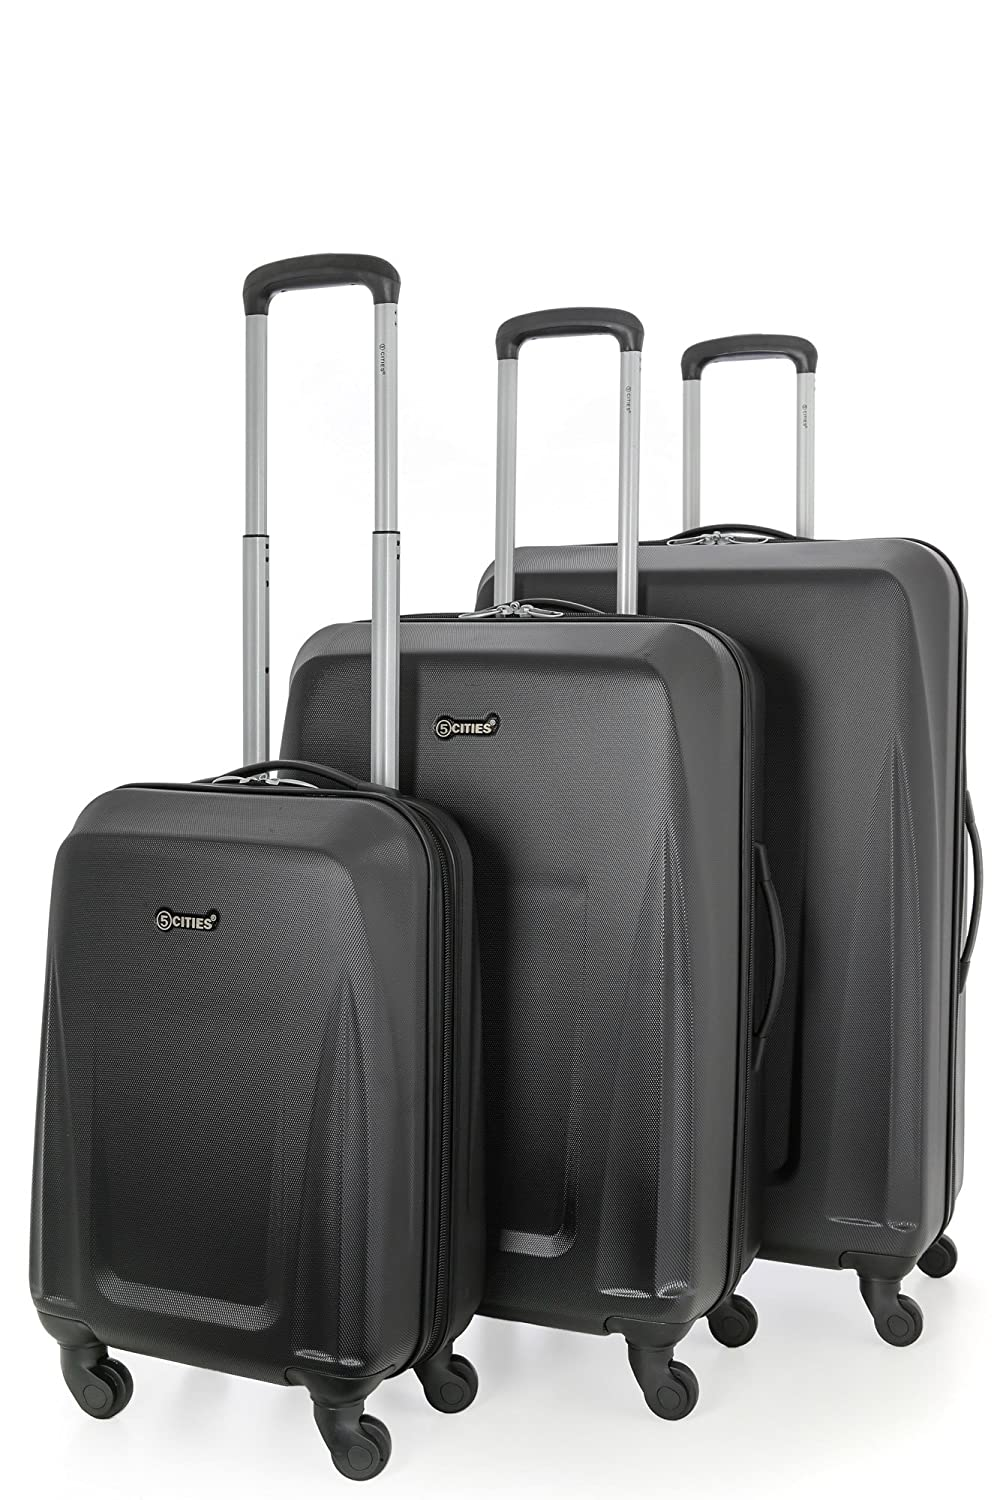 5 Cities Lightweight ABS Hard Shell 3 Piece Luggage Suitcase Set with 4 Wheels (21